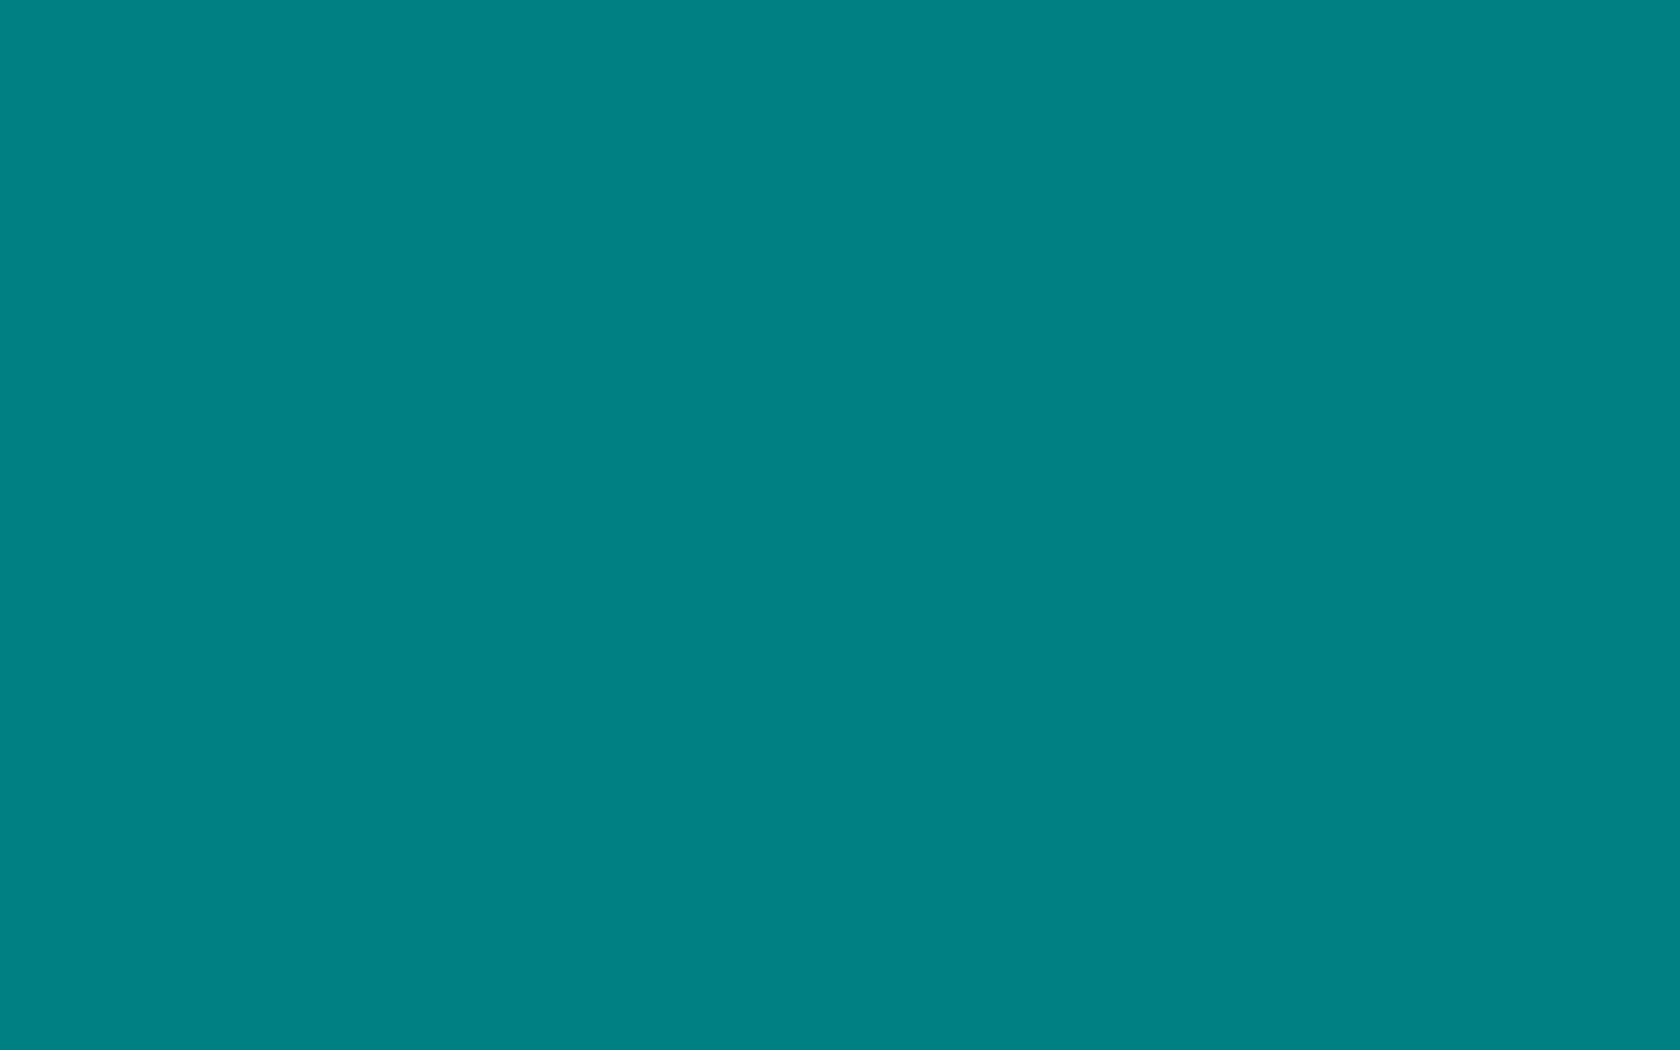 1680x1050 Teal Solid Color Background